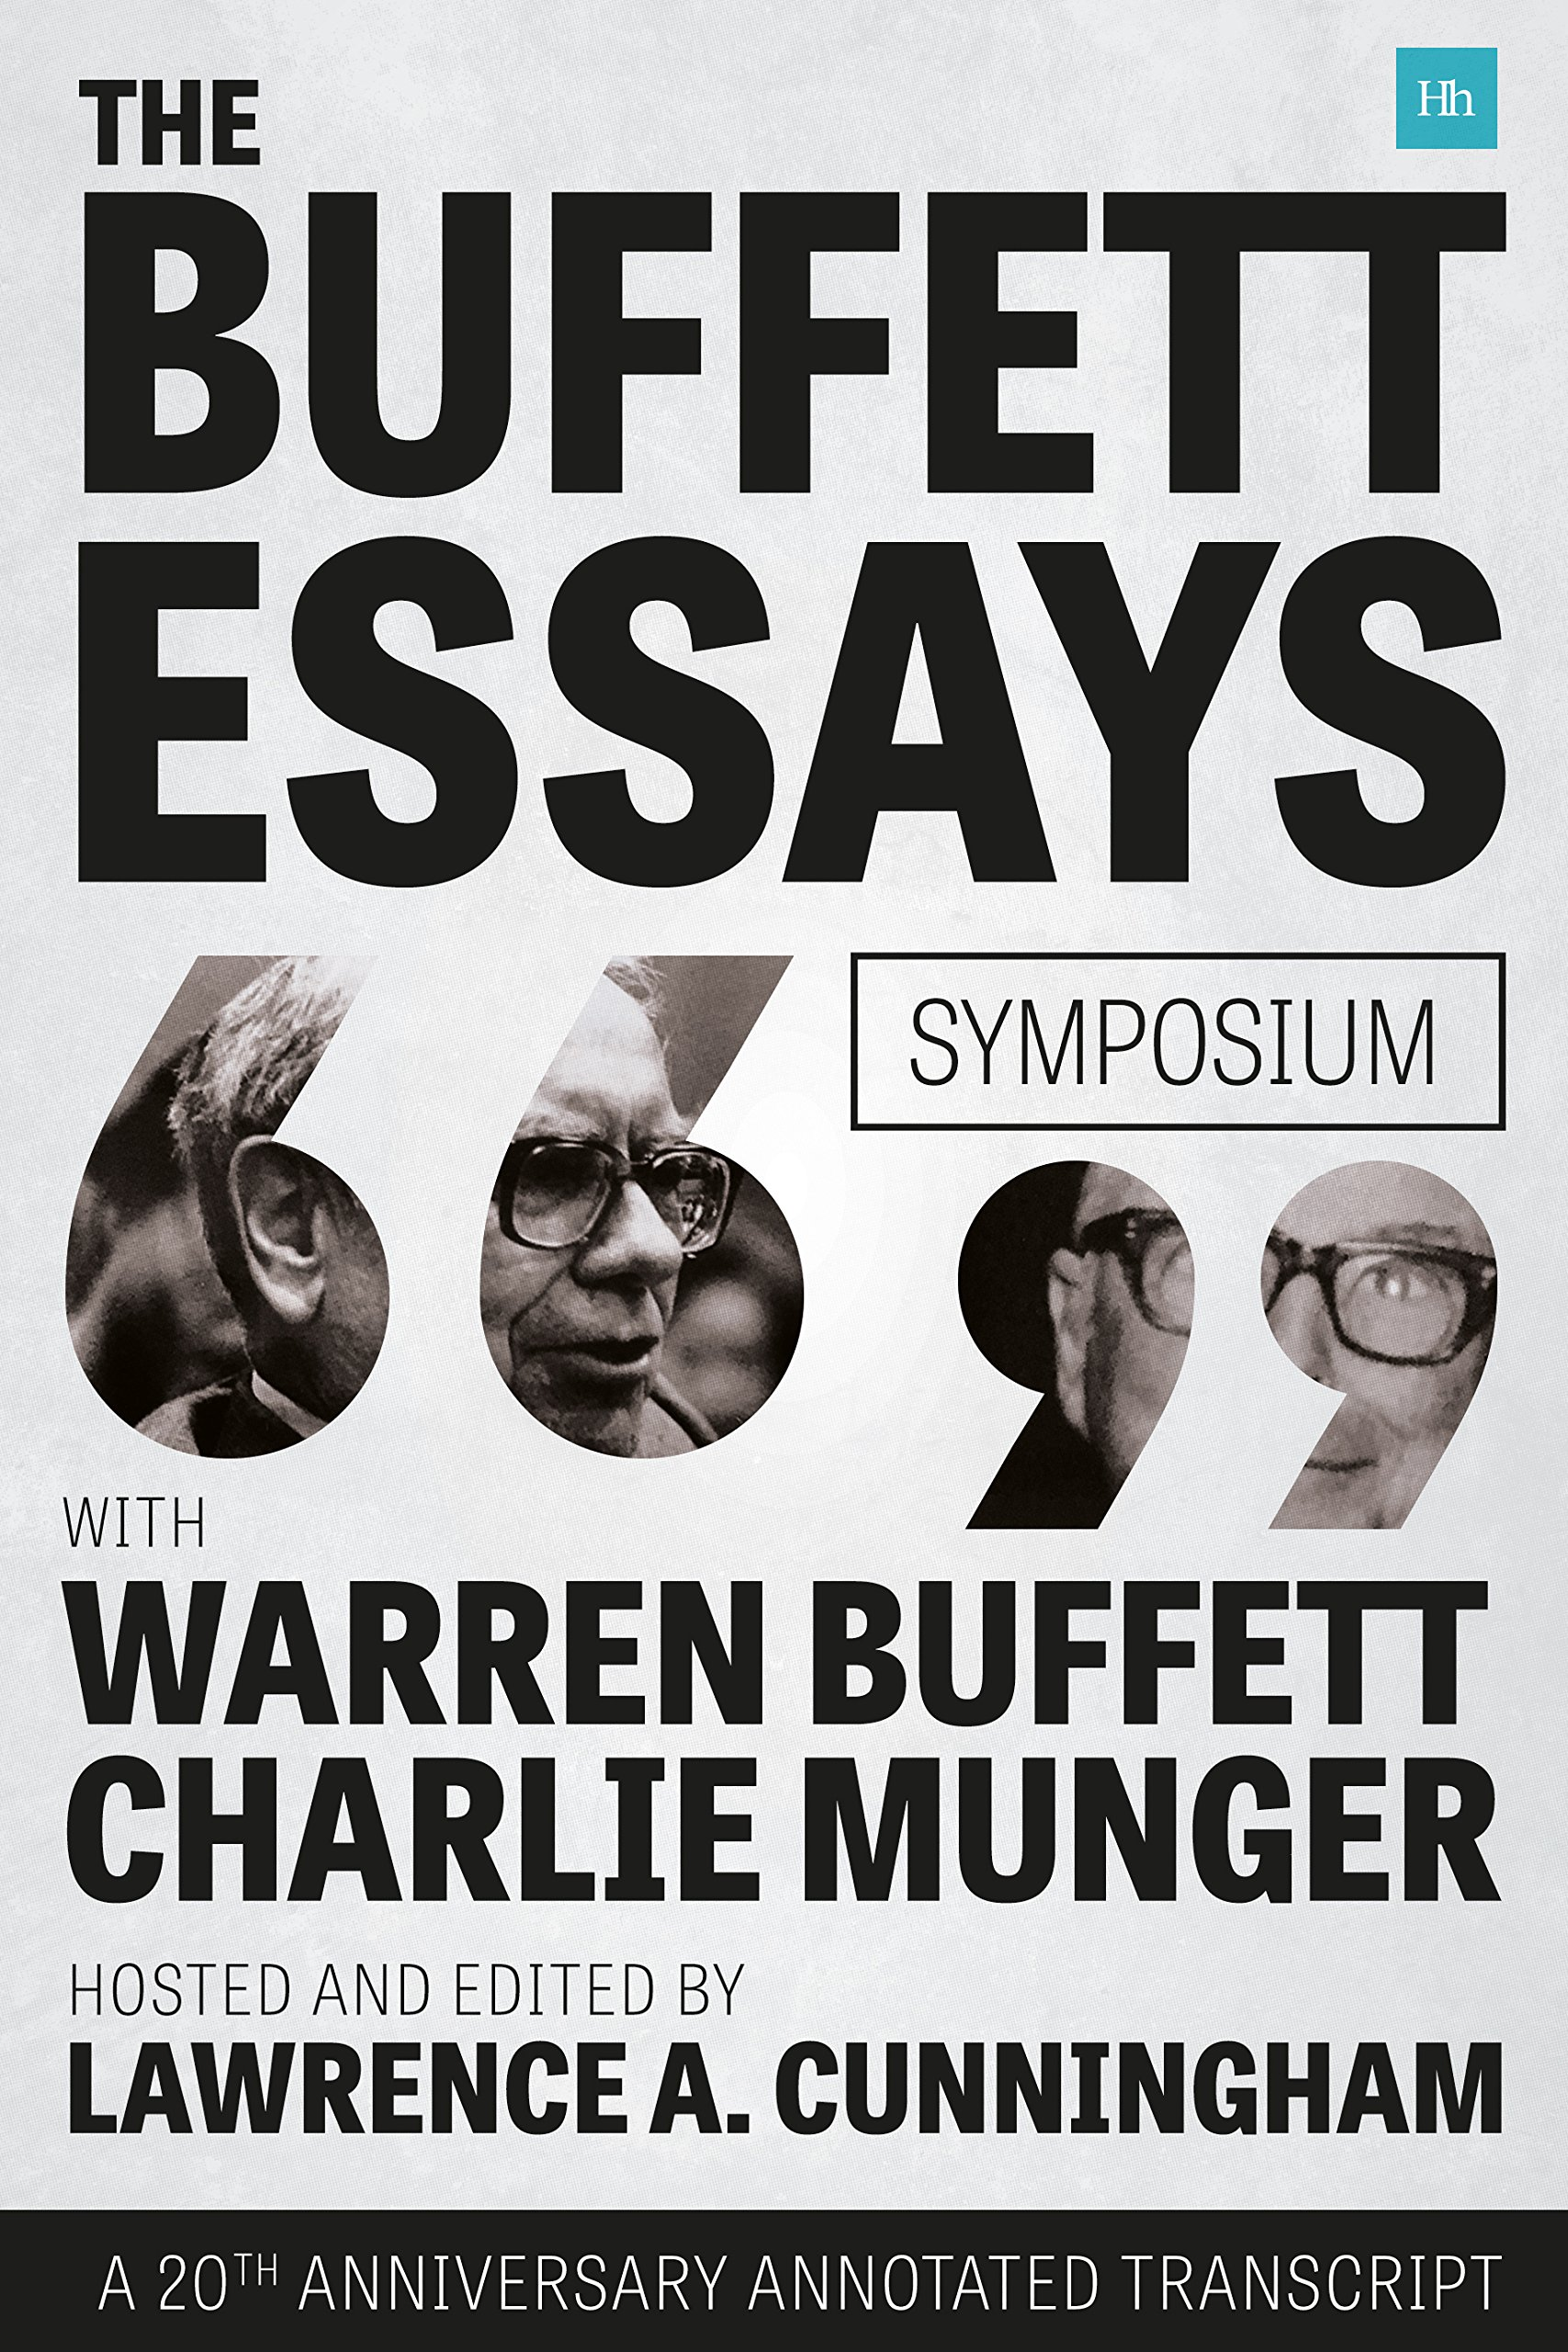 com the buffett essays symposium a 20th anniversary  com the buffett essays symposium a 20th anniversary annotated transcript 9780857195388 lawrence a cunningham books